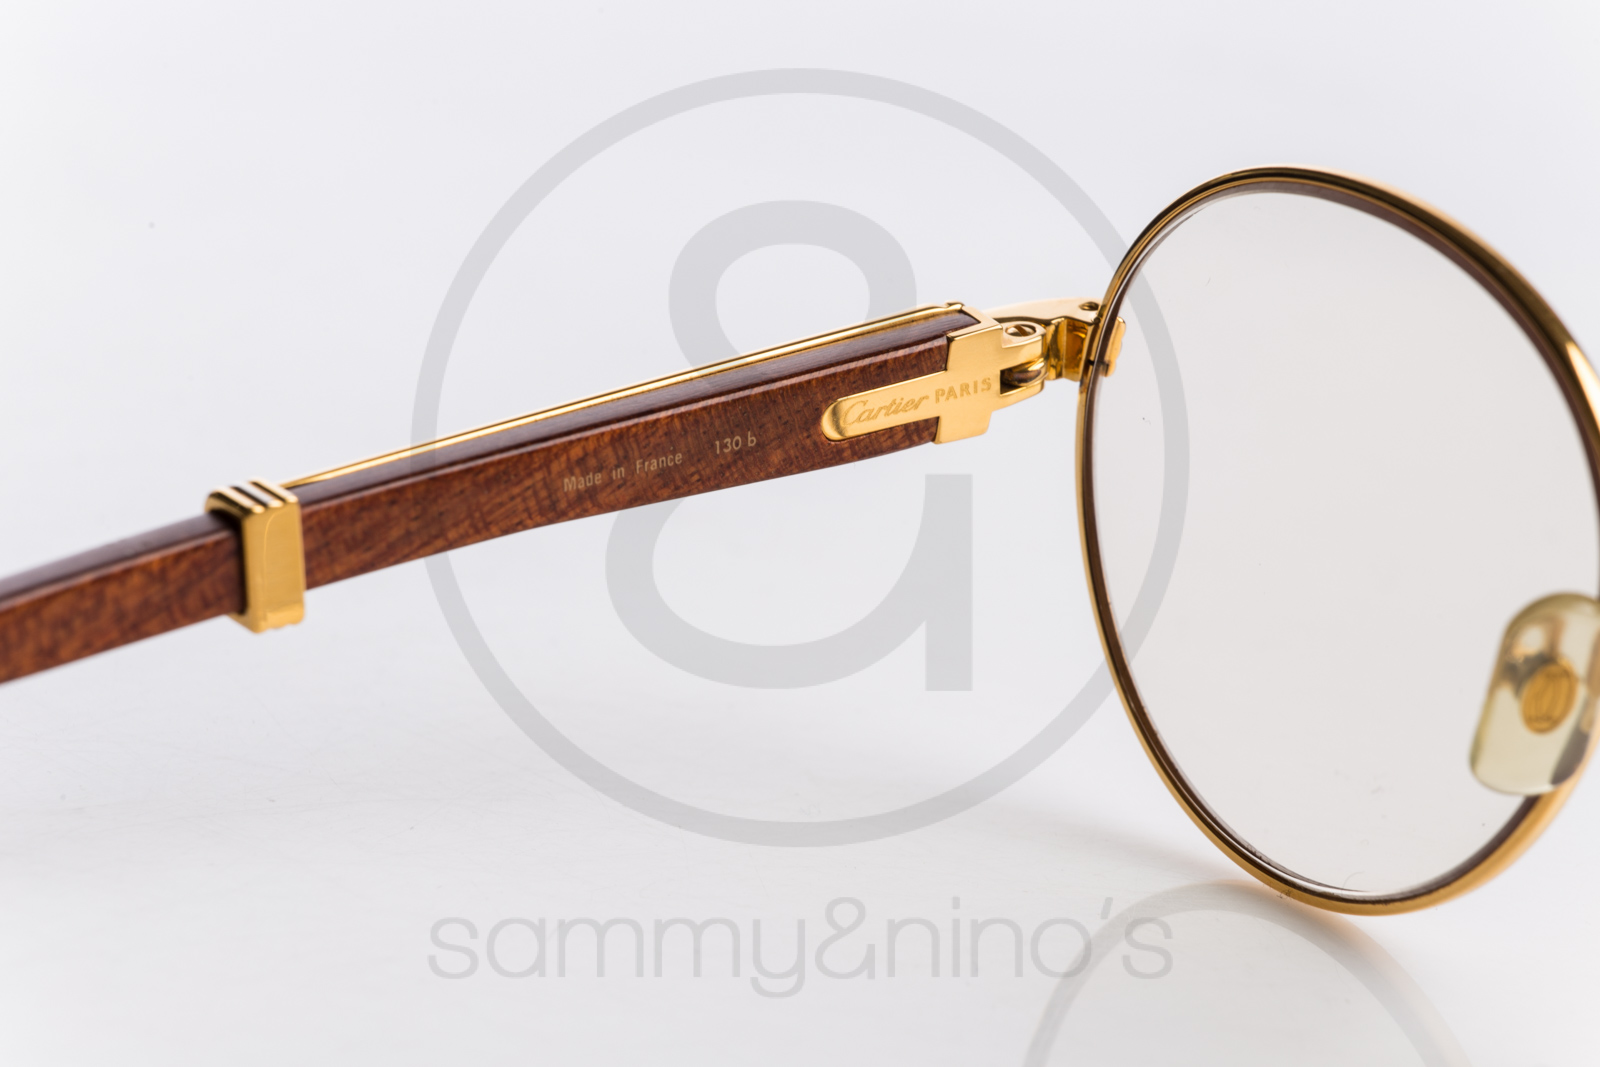 Cartier Gold Frame Sunglasses : Cartier Bagatelle 52-18 Sammy & Ninos Store